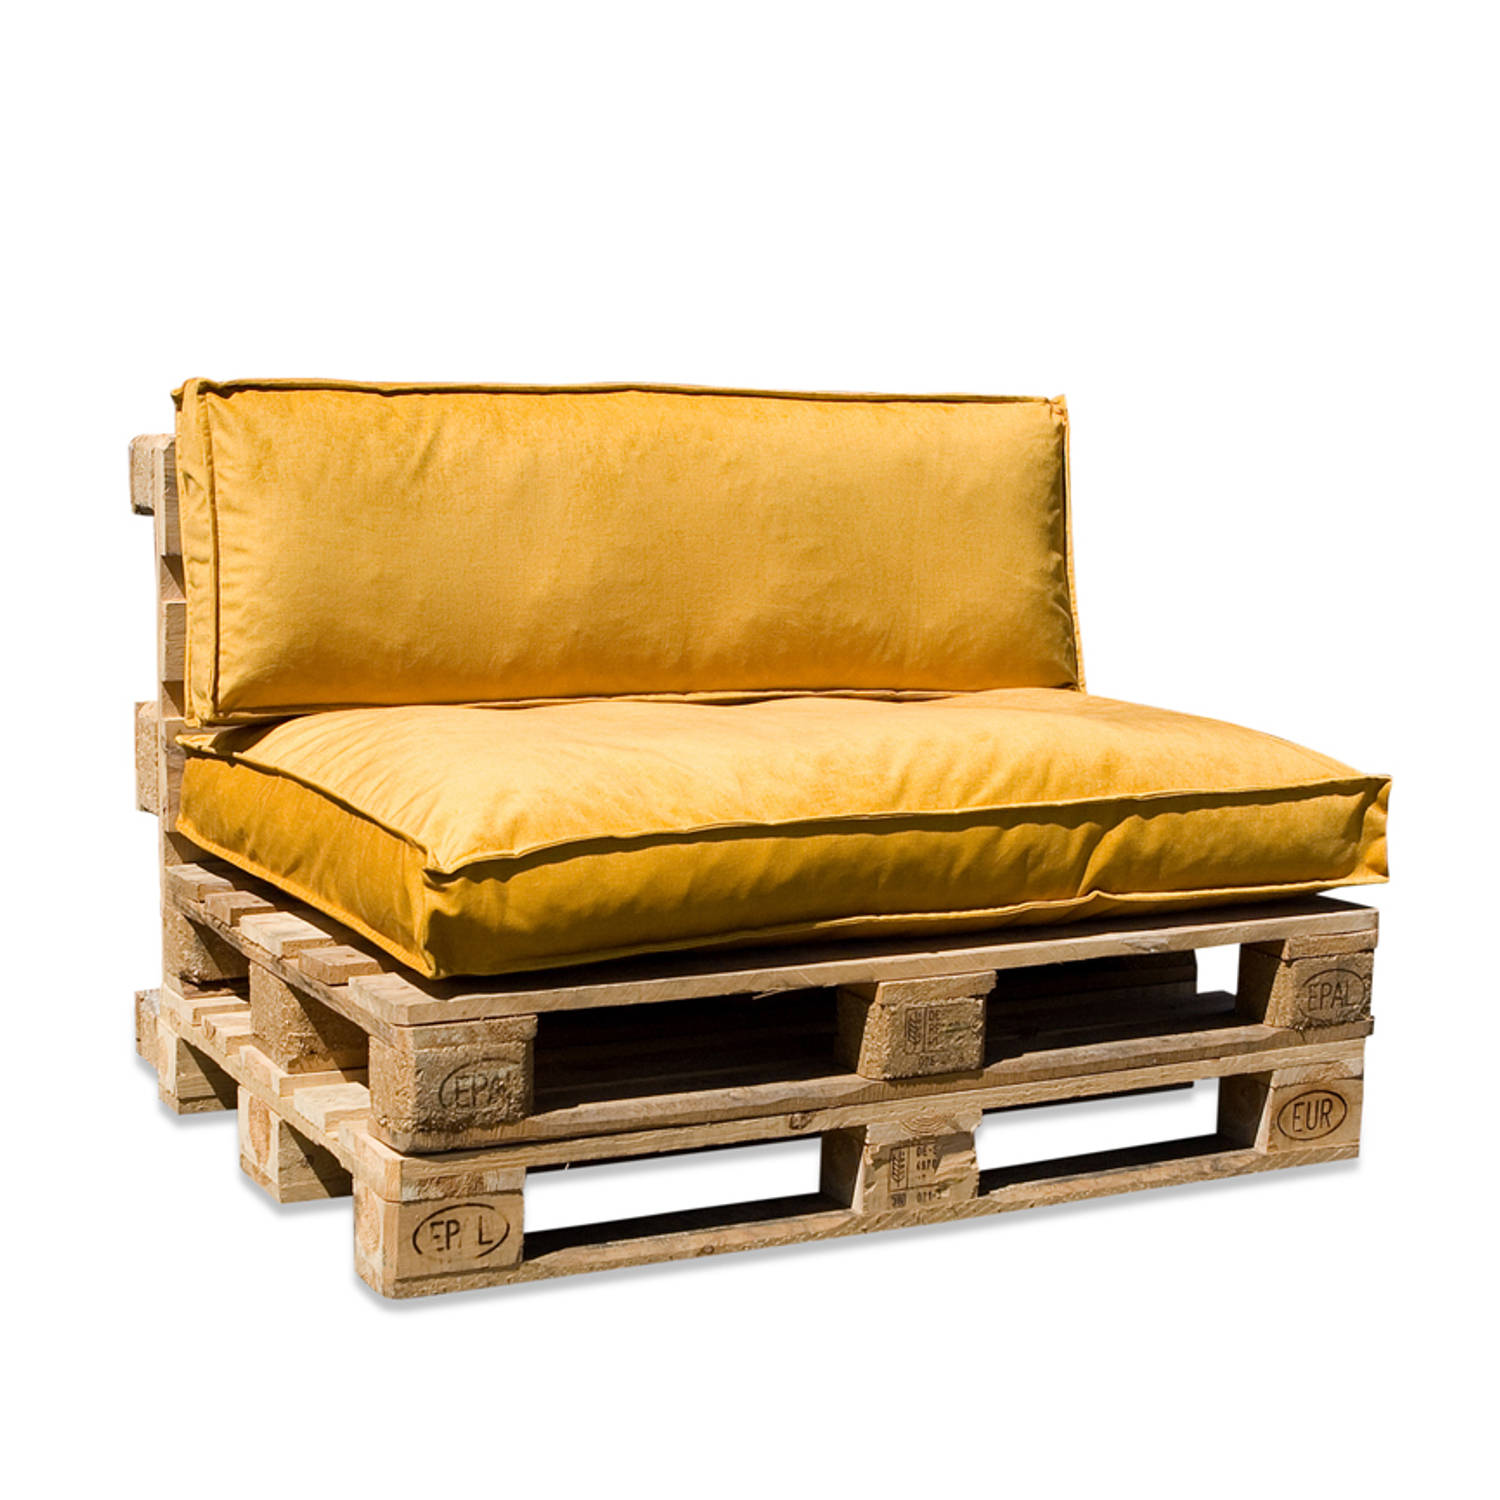 In The Mood Collection In The Mood Palletkussenset Royal Velvet Honing Geel